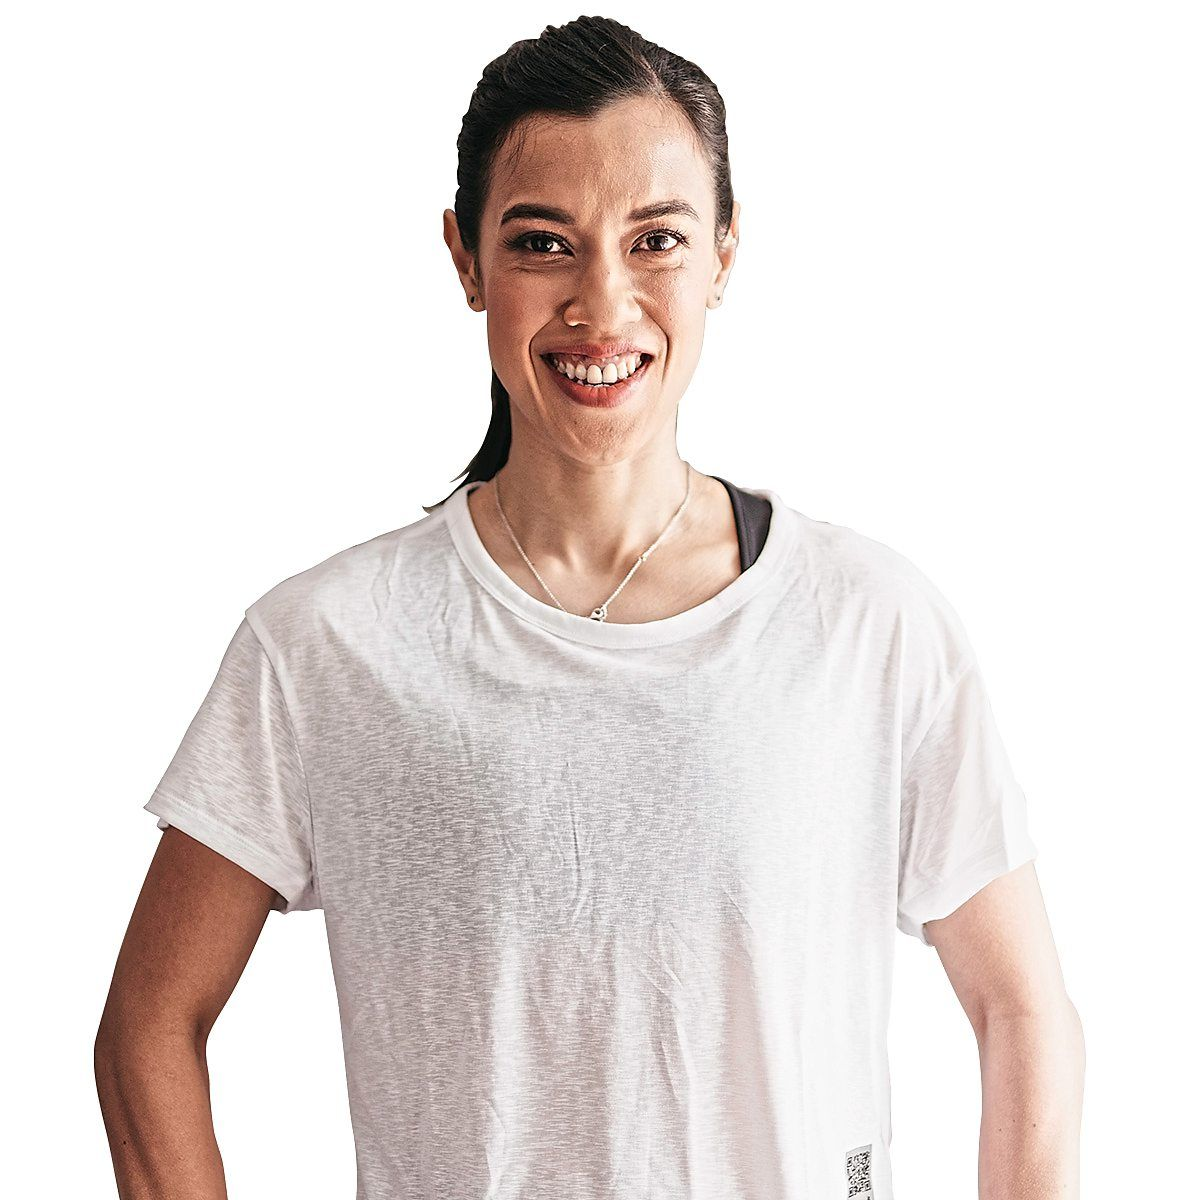 Join Nicol David on TFM Exploration Day (Aug 7) to hear how she became the greatest woman squash player of all time.